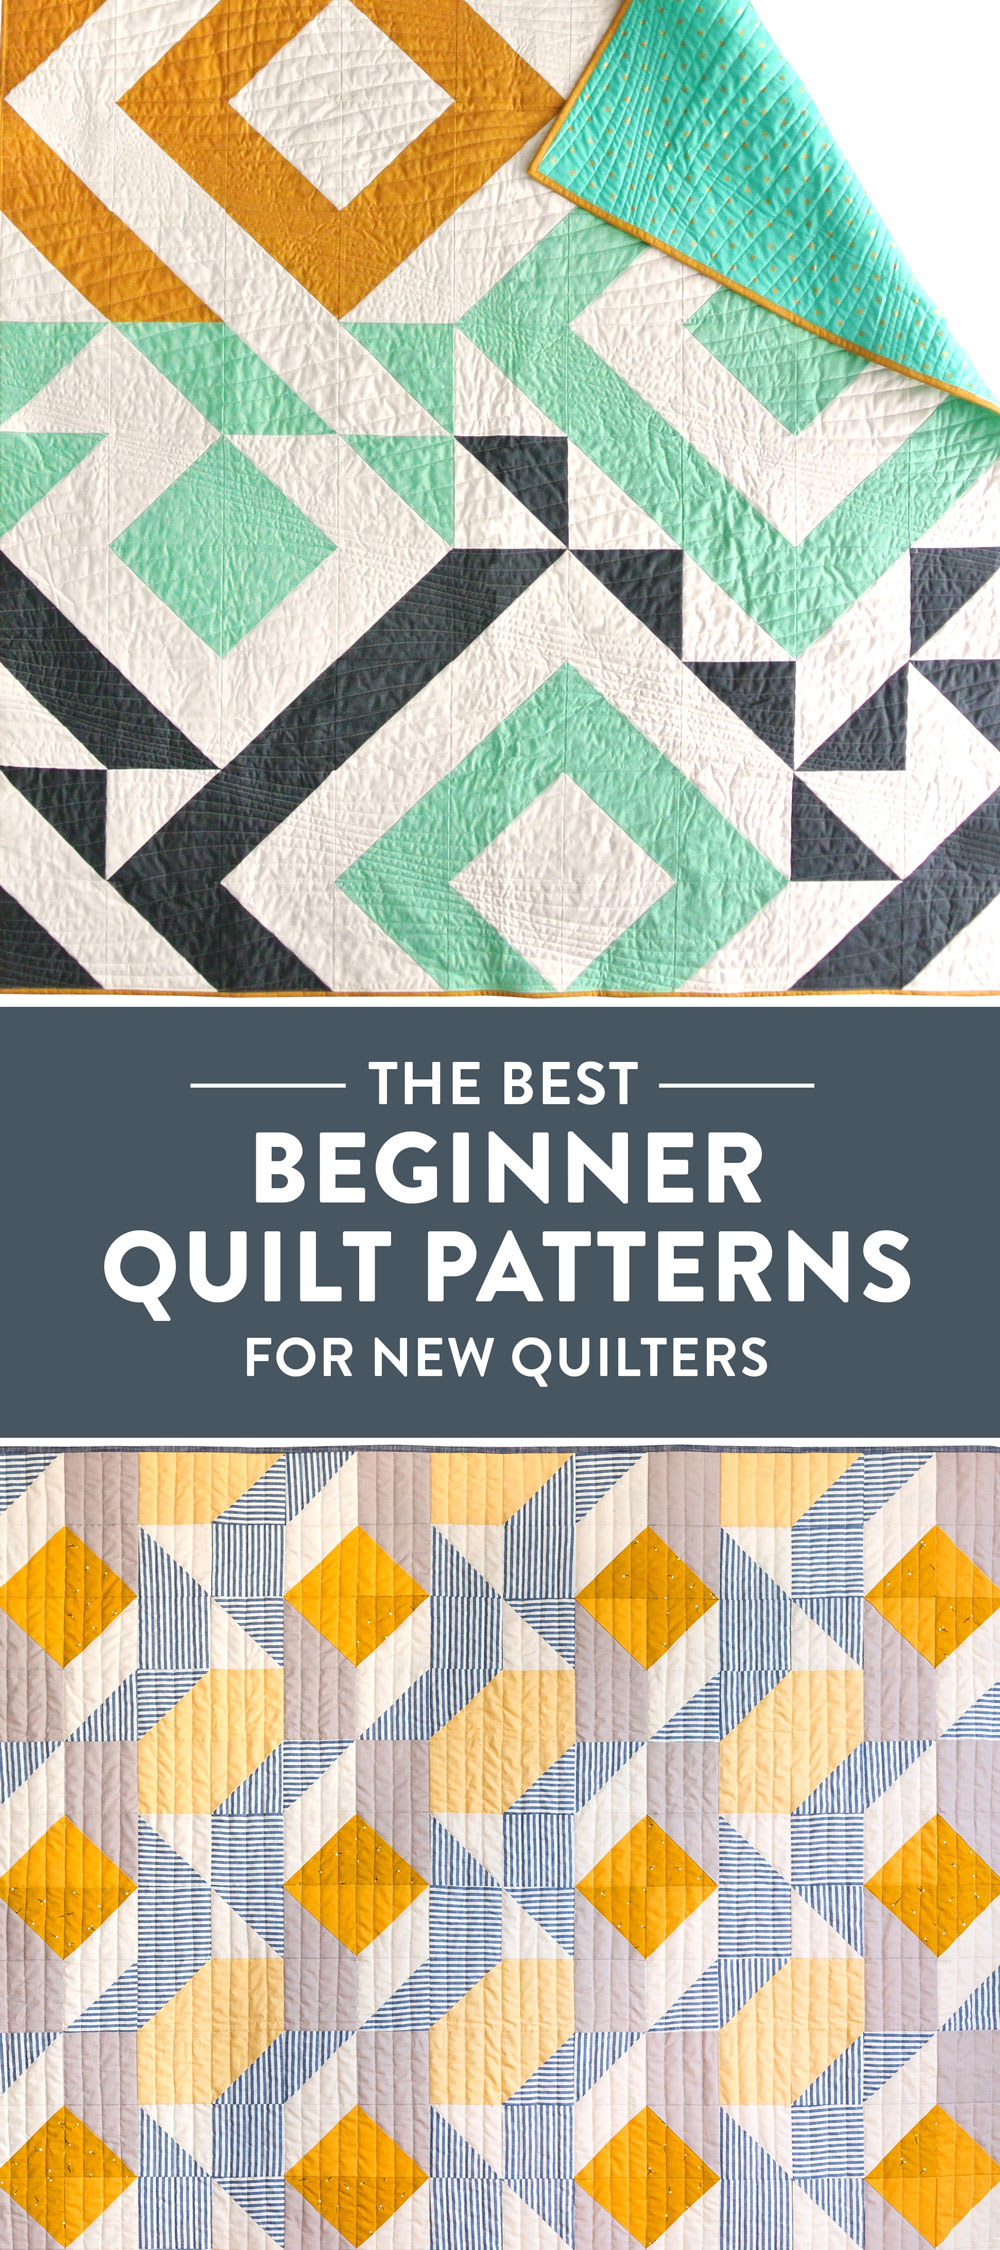 6 of the BEST beginner quilt patterns for new quilters! Jelly roll friendly, fat quarter friendly, scrap friendly – perfect for a newbie quilter. suzyquilts.com #quiltpattern #freequiltpattern